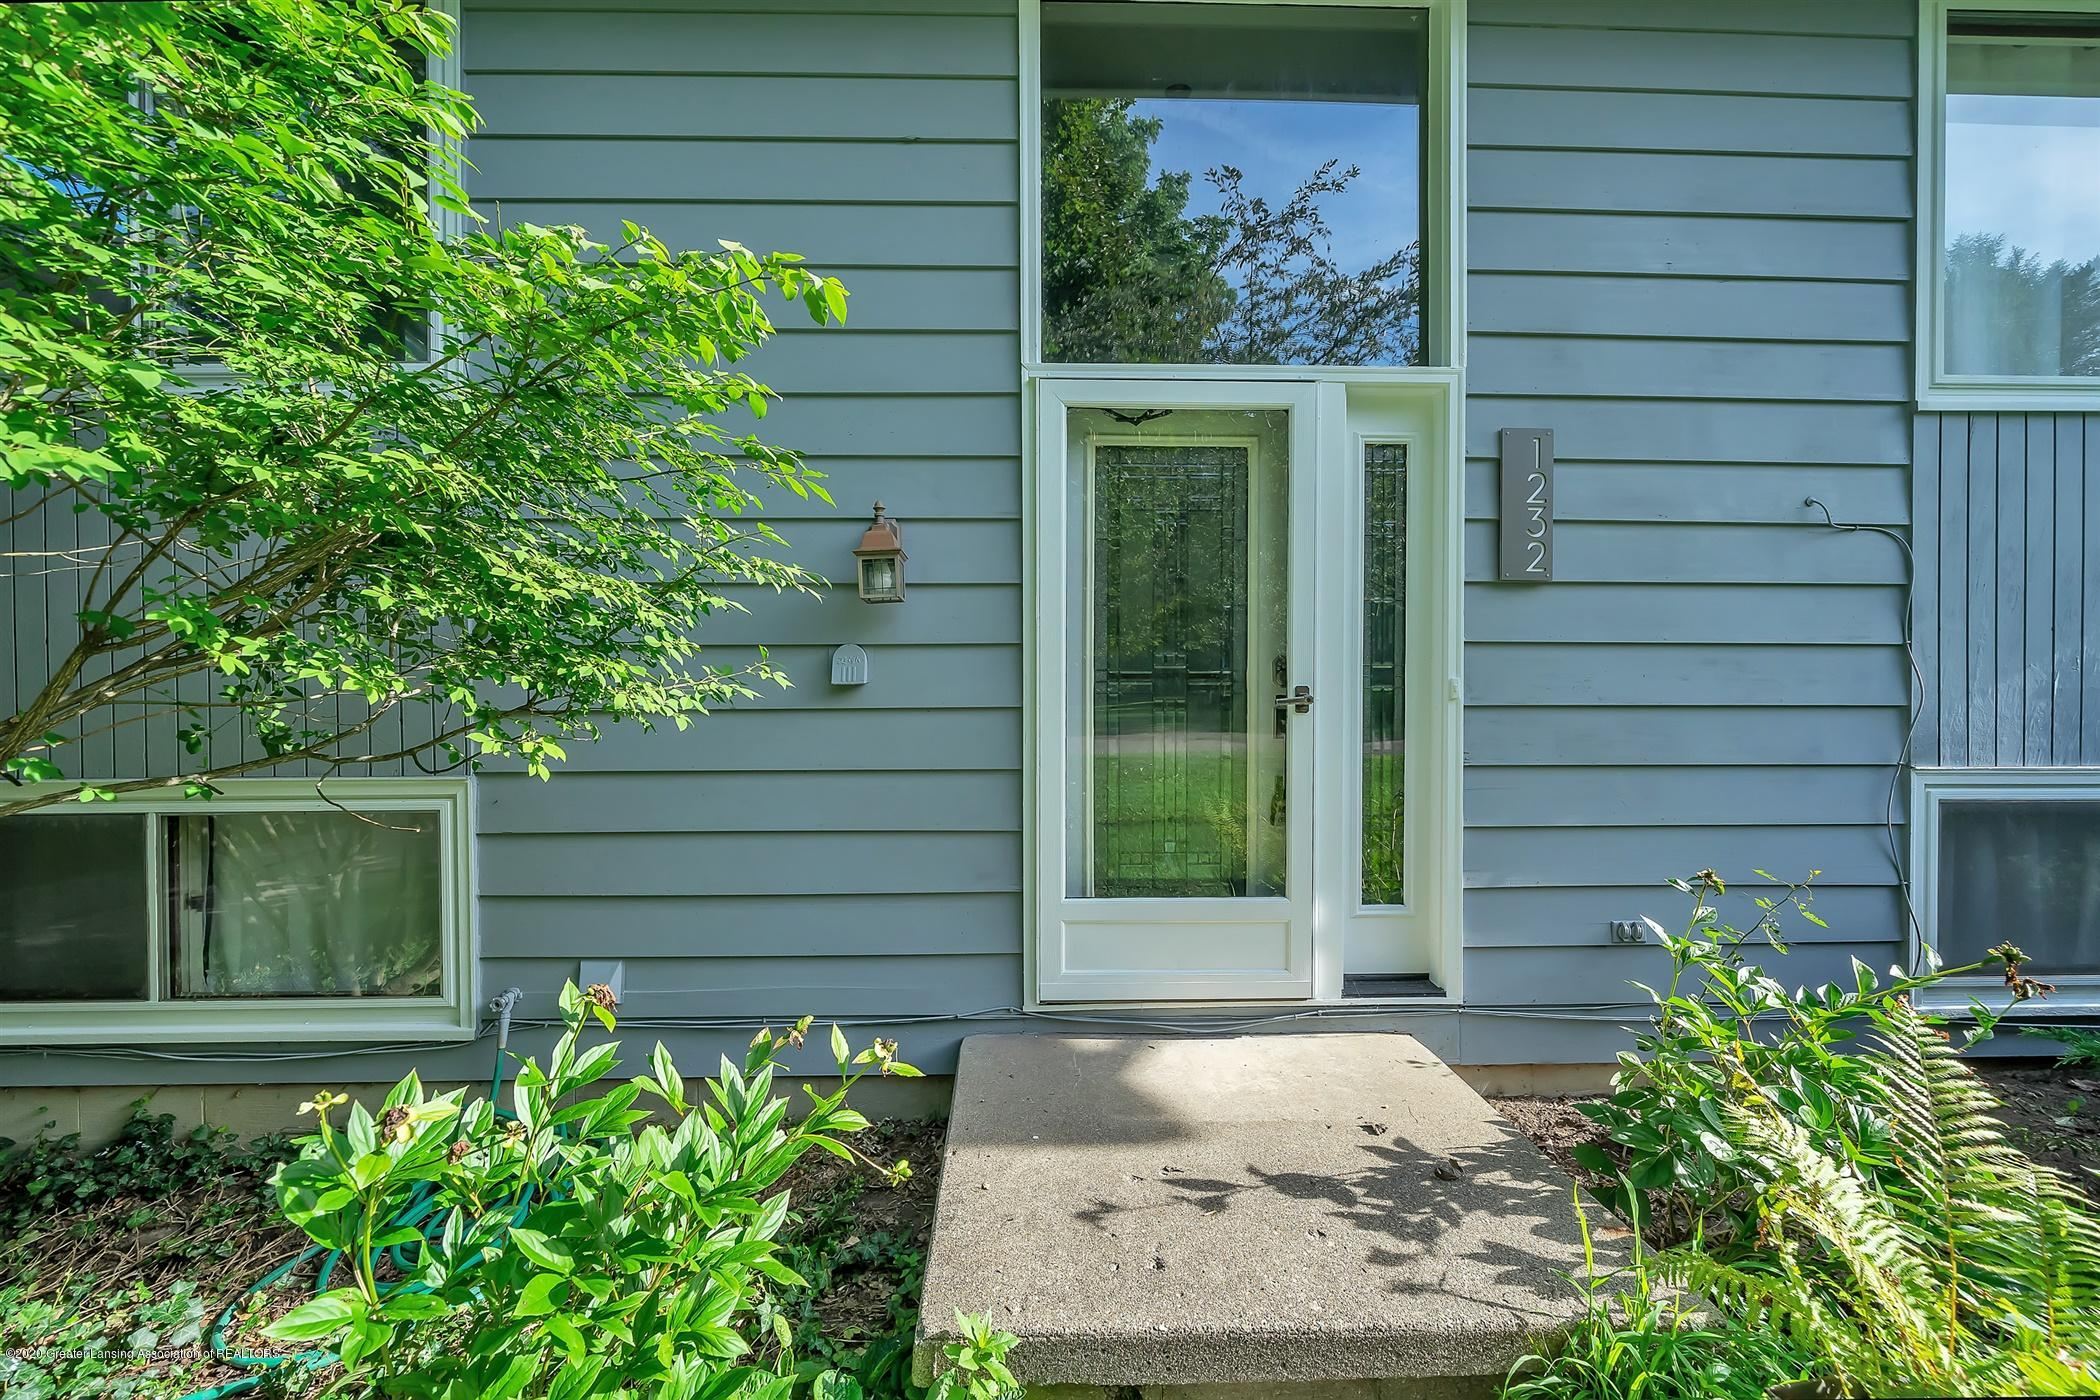 1232 Tanager Ln - 02-1232-Tanager-Ln-WindowStill-Real - 3